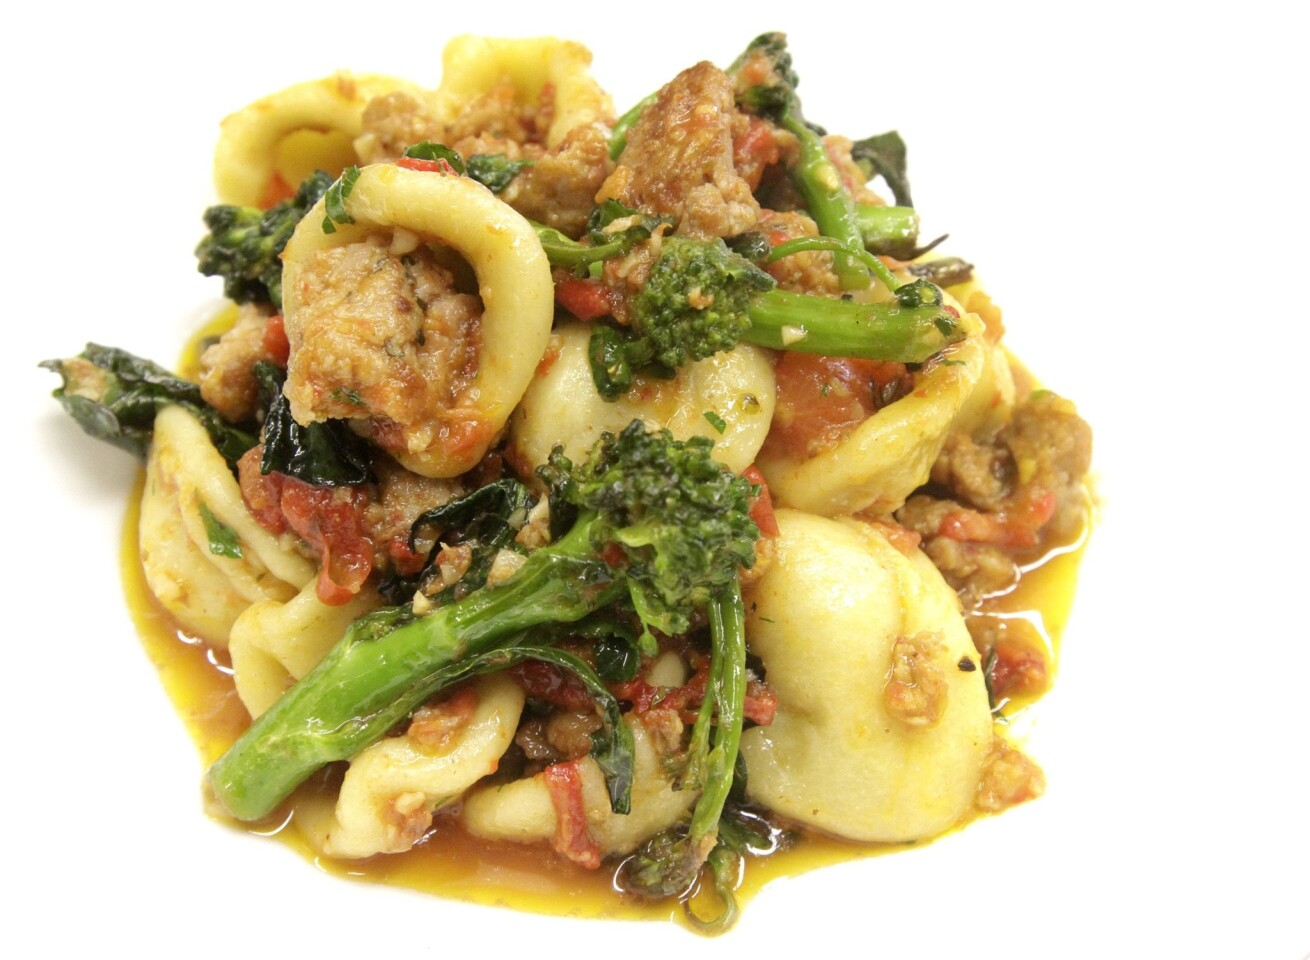 A pasta dish with orecchiette, sausage, sugo, sprouting broccoli, chiles and Ragusano at Bucato, an Italian restaurant in the Helms Bakery complex in Culver City.